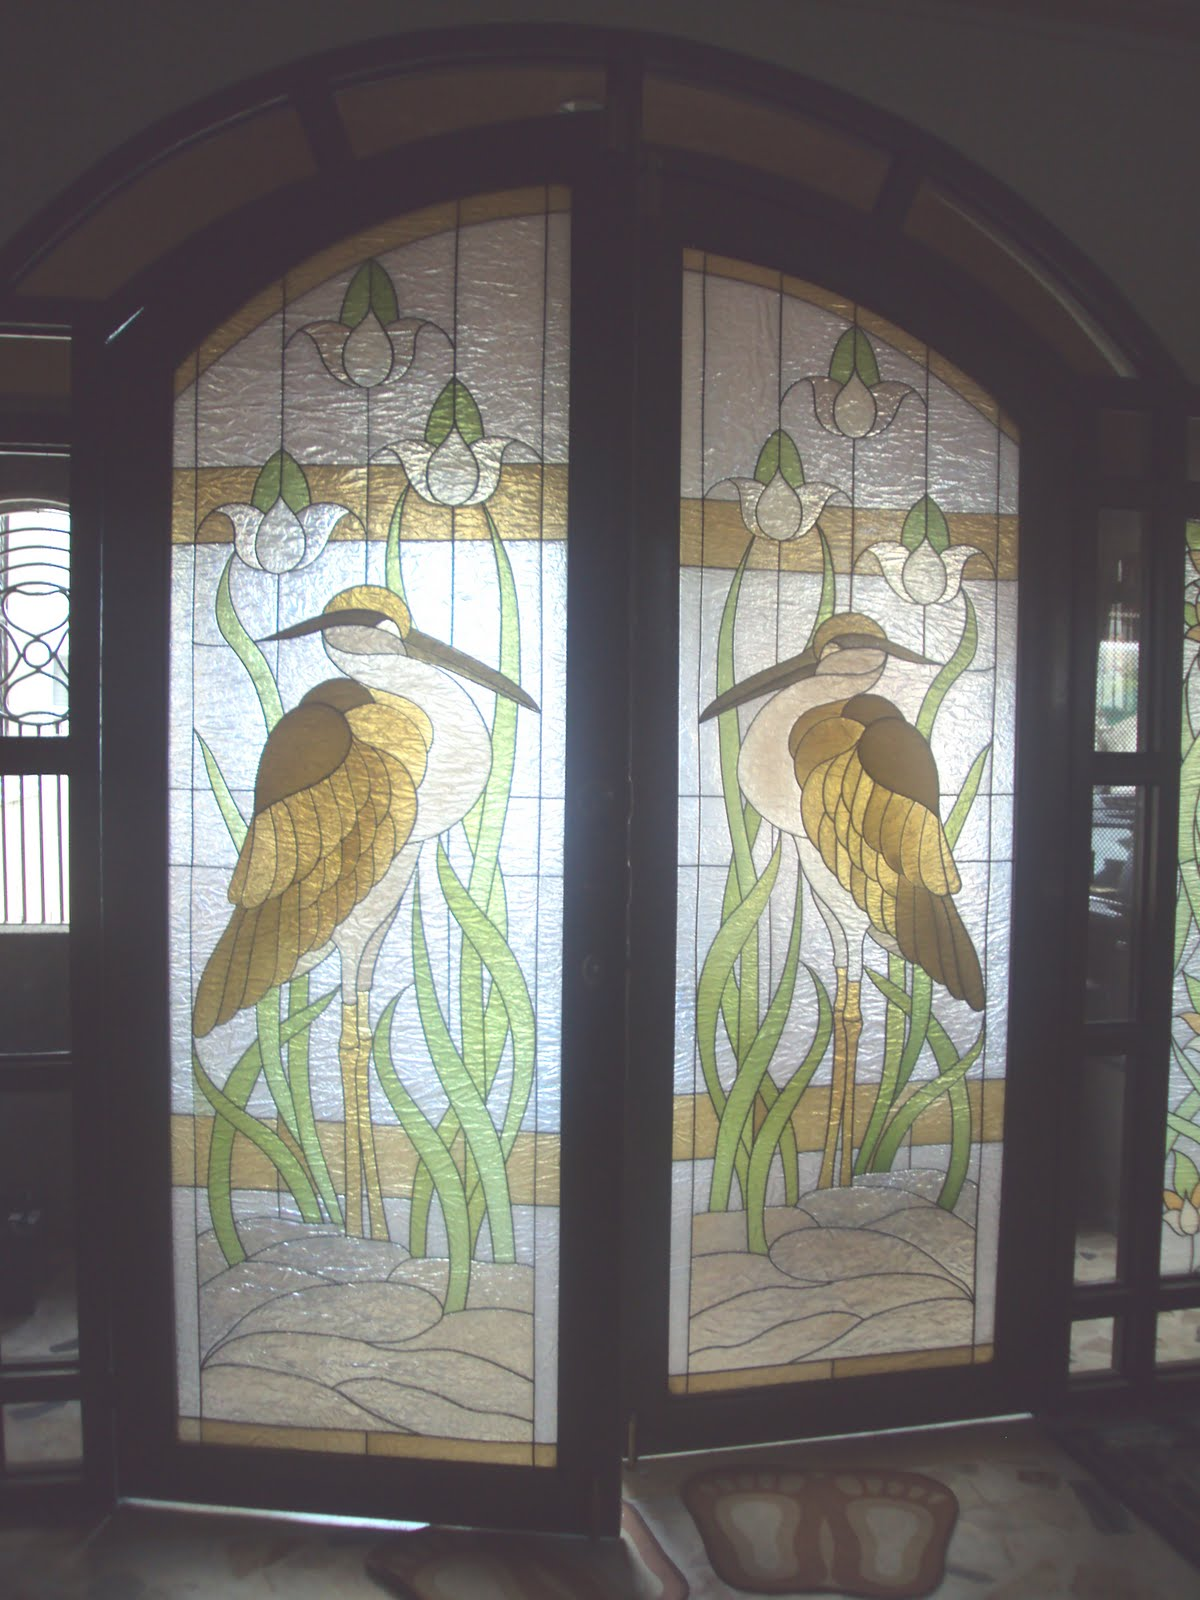 1600 #80724B  Wall Decors Philippines: Stained Glass (Fiberglass) Door Stork image Stainable Fiberglass Entry Doors 40231200